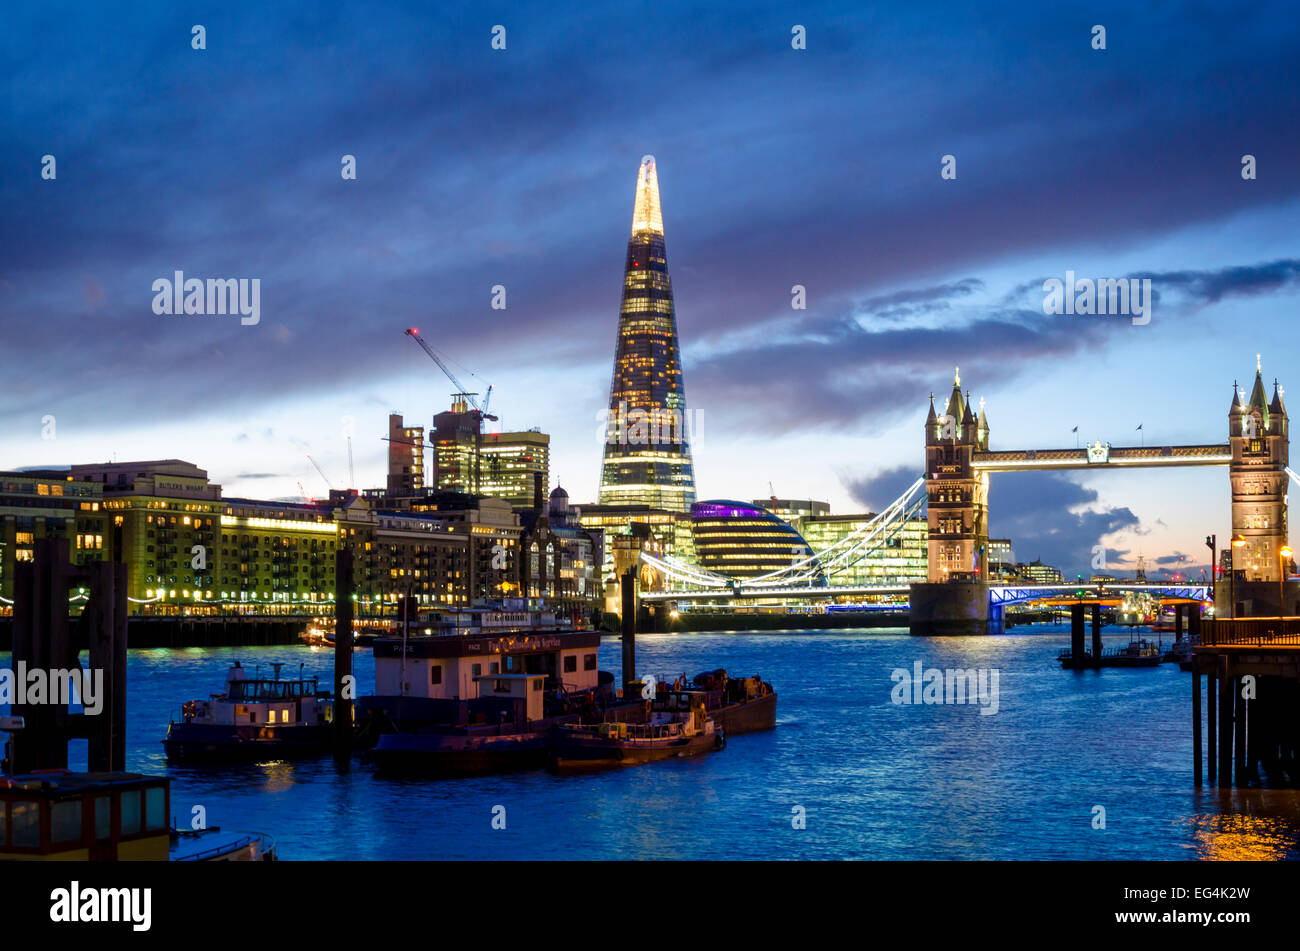 Tower Bridge and The Shard viewed from the north bank of the Thames at night. London, UK - Stock Image